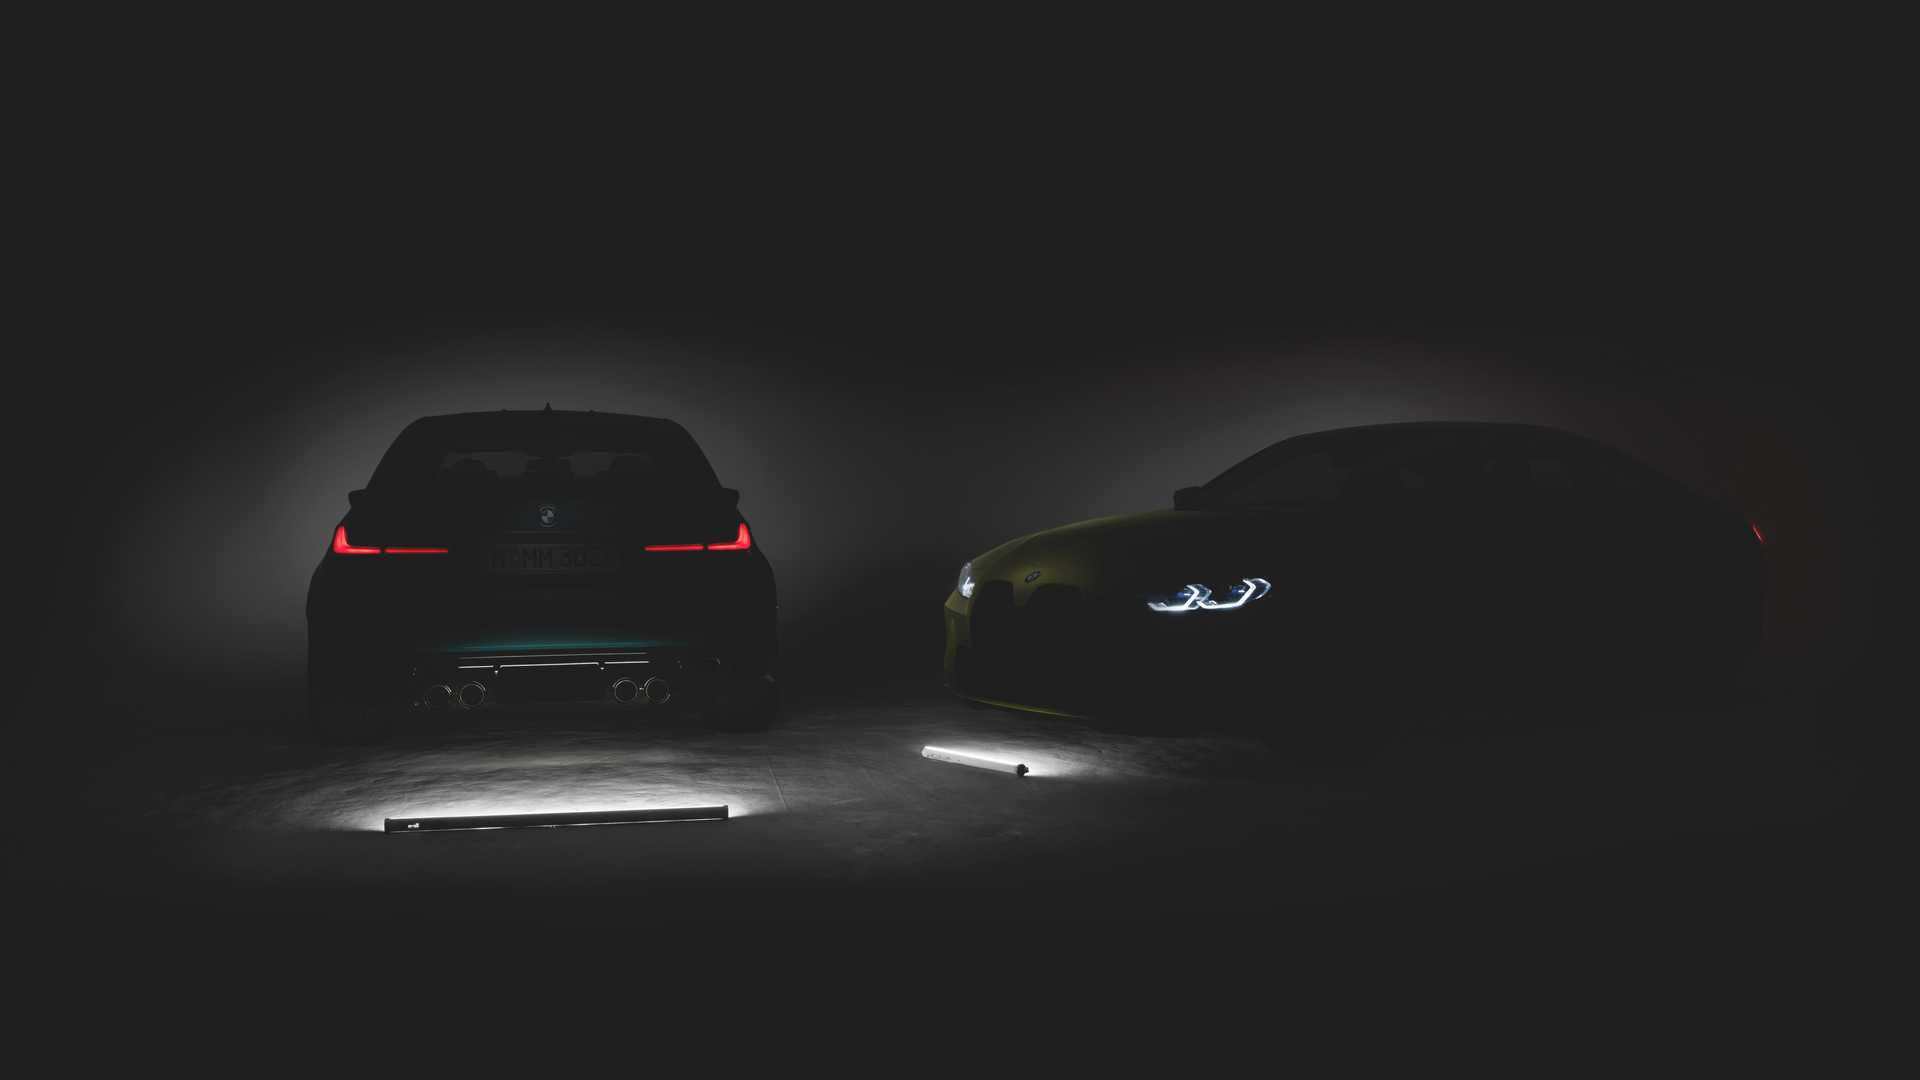 Bmw Actually Trolled Us With The M3 And M4 Teasers